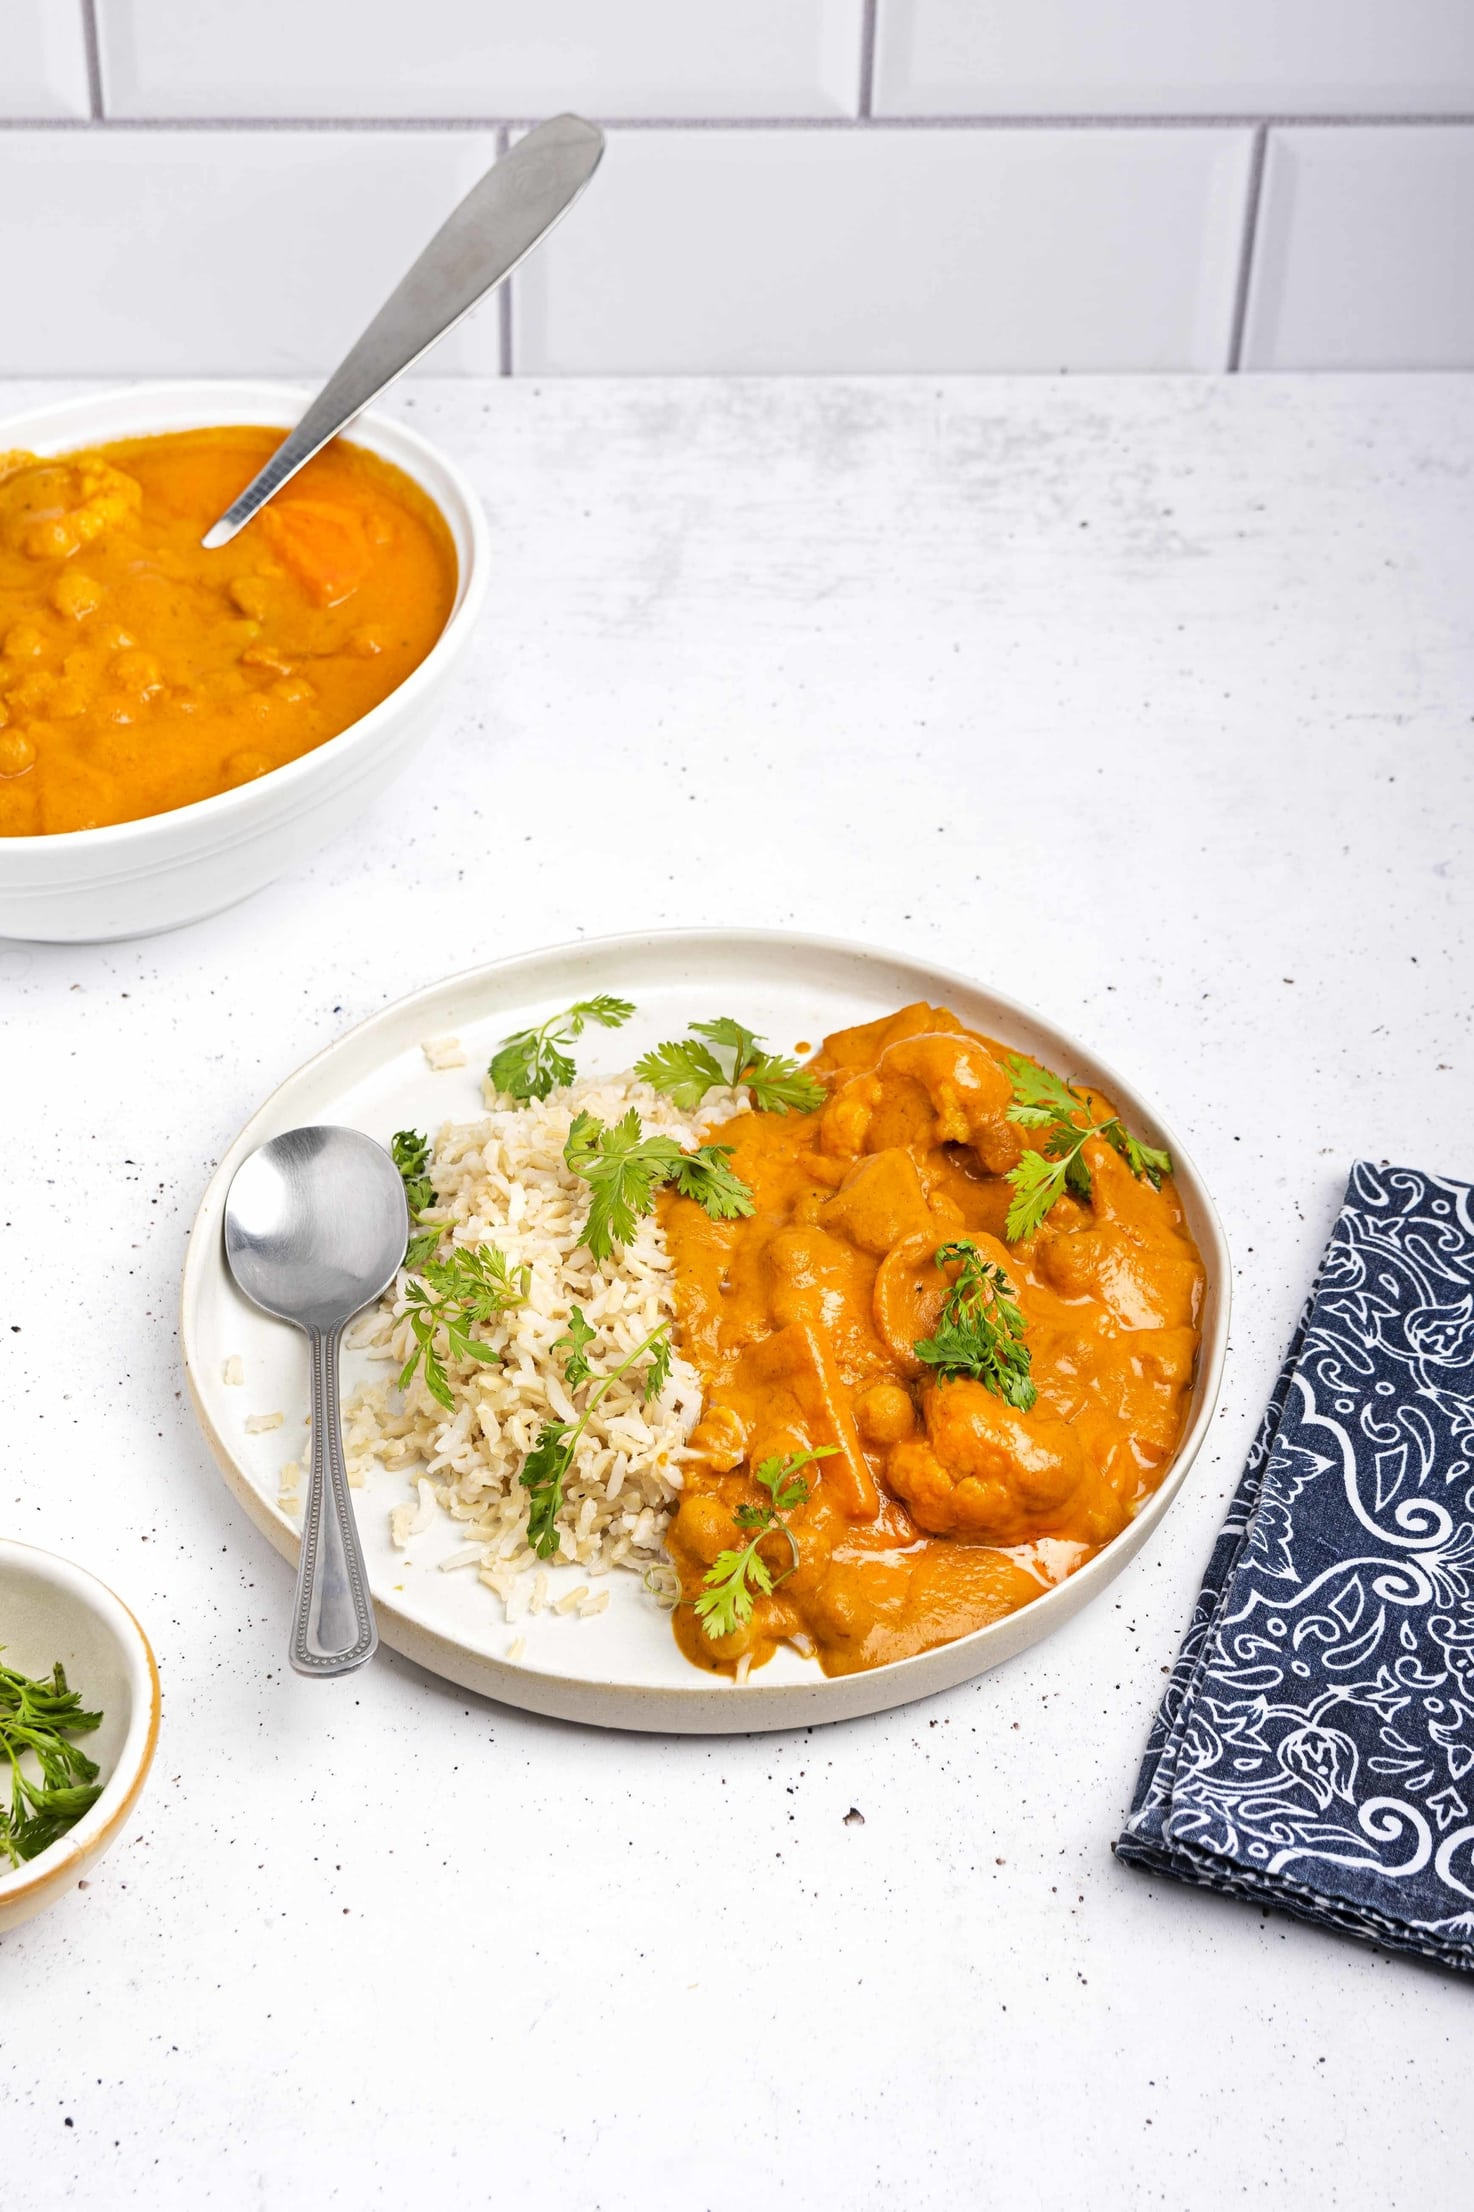 Vegan Tikka Masala served with a spoon on a plate, accompanied by brown rice and garnished with parsley. There is another bowl of tikka masala in the top left hand corner and a small bowl of chopped parsley in the bottom left hand corner   Hurry The Food Up